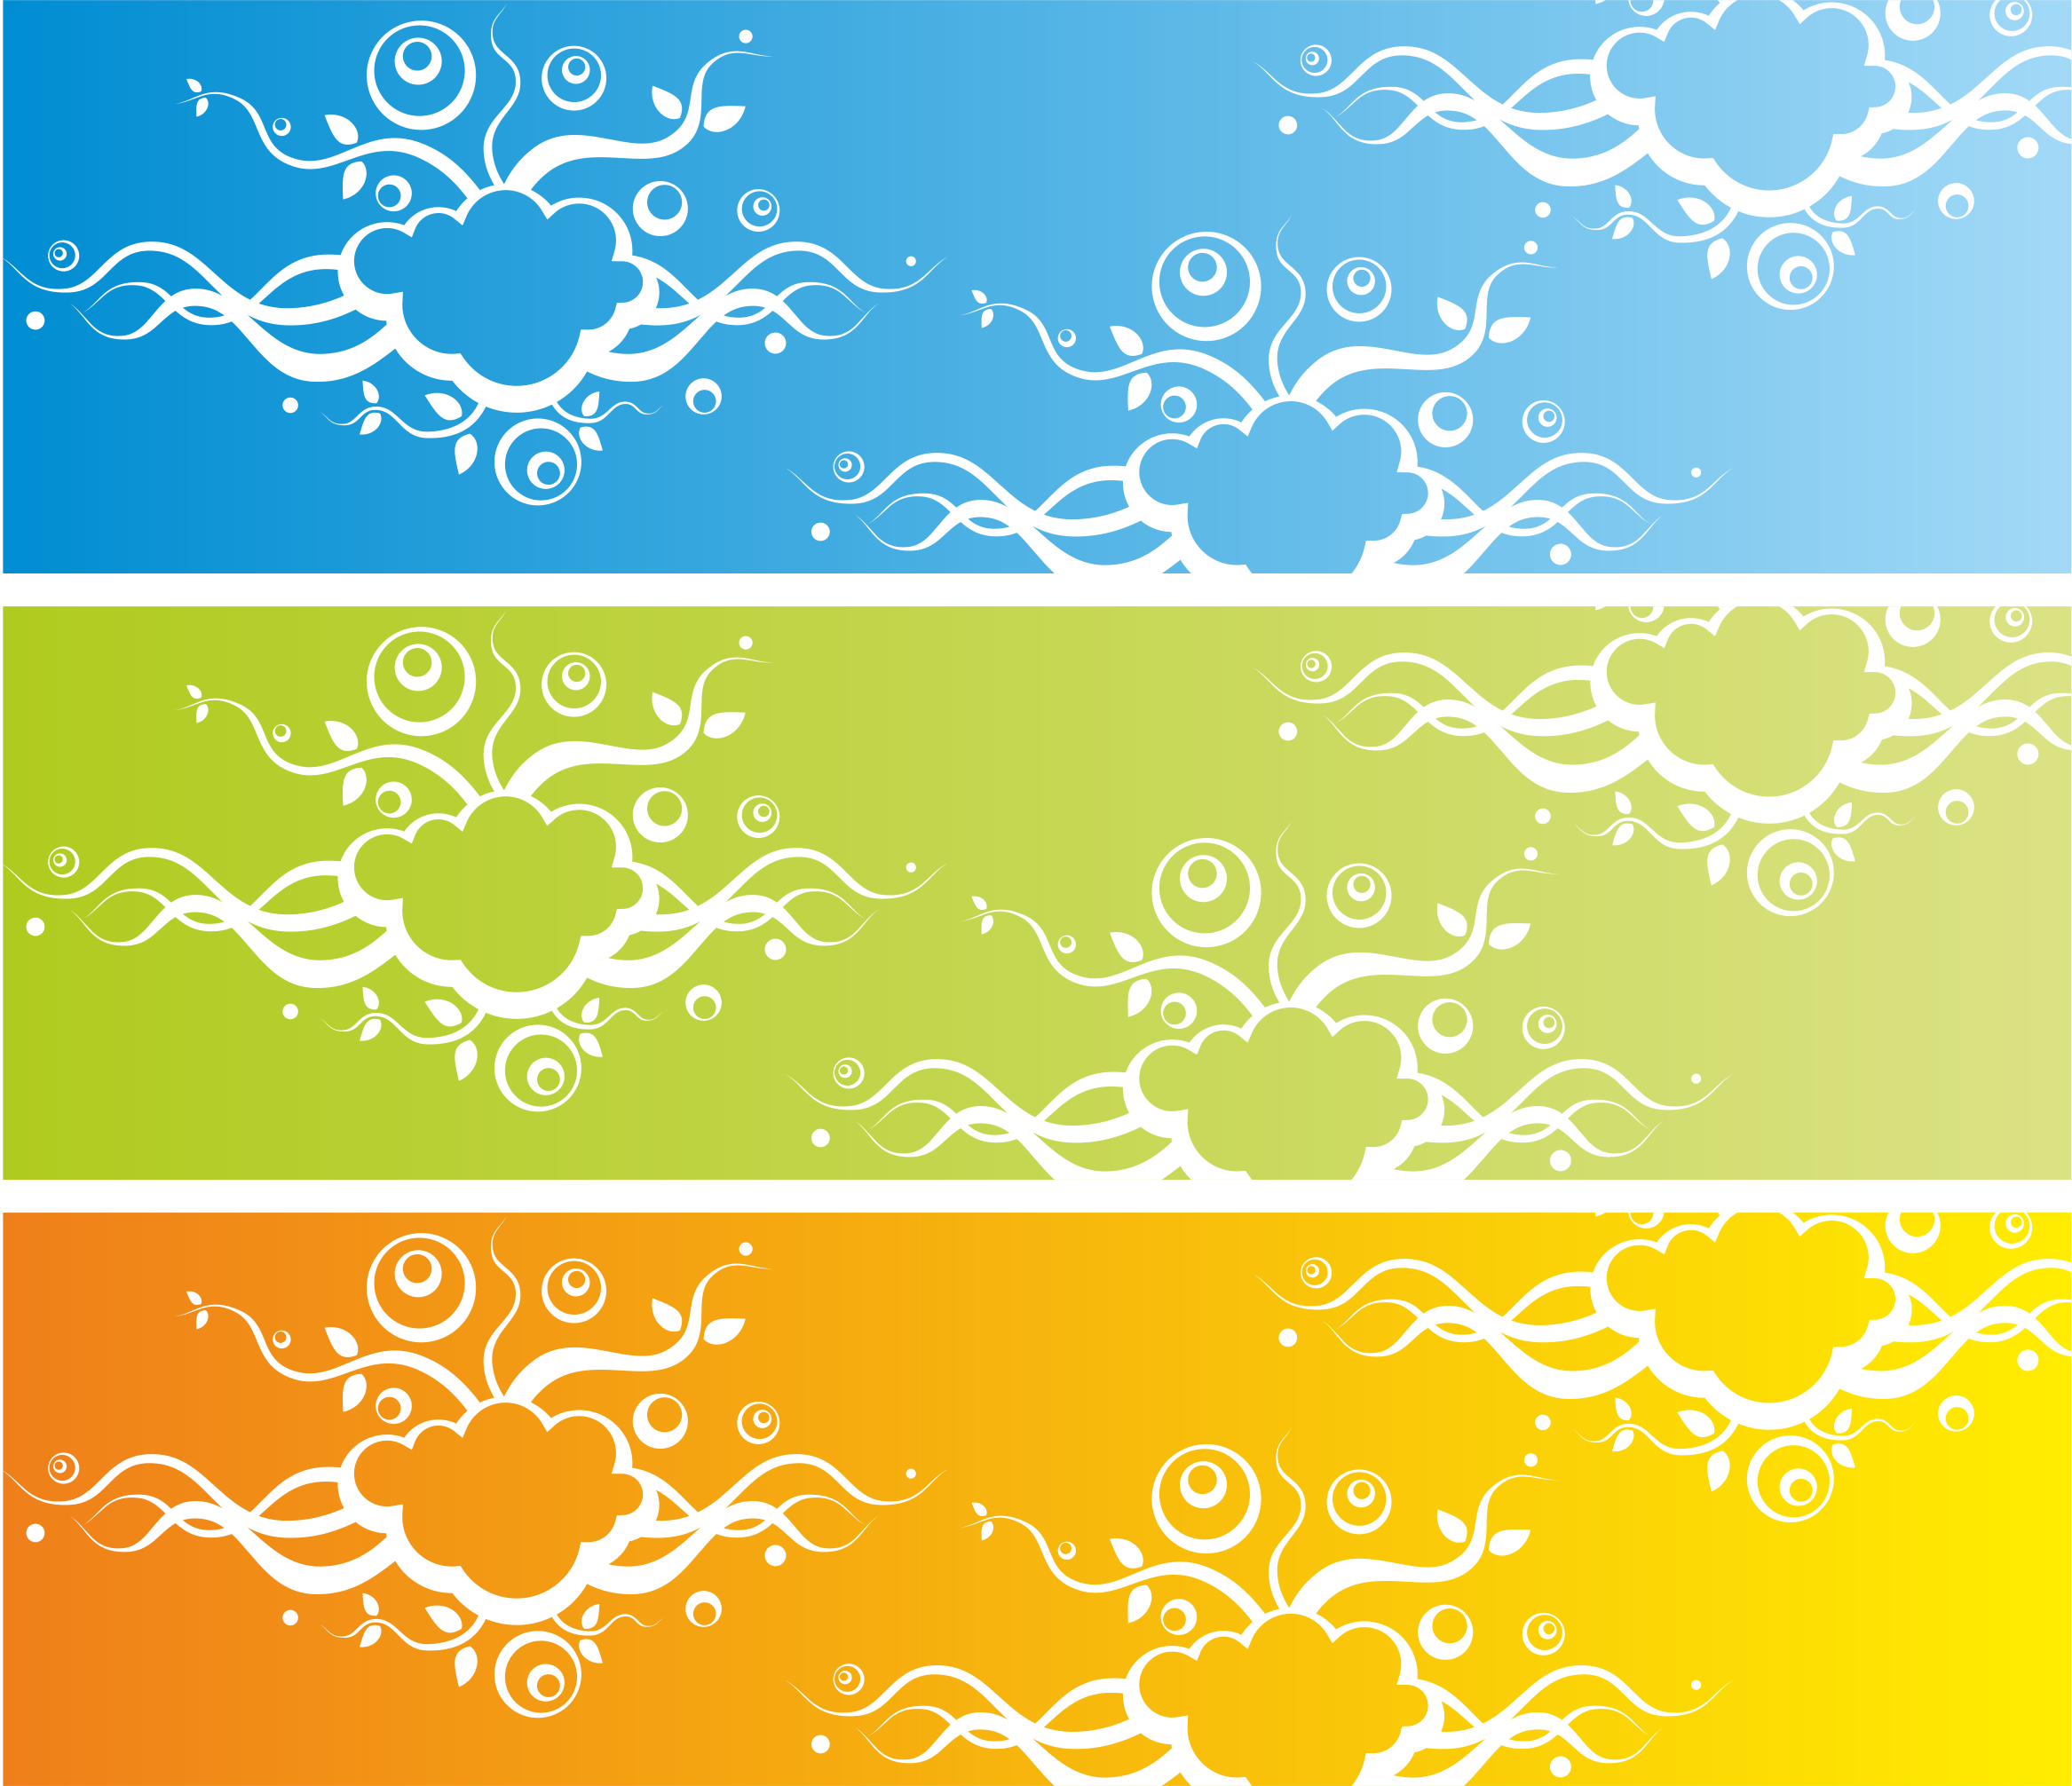 Banner with abstract background by waider